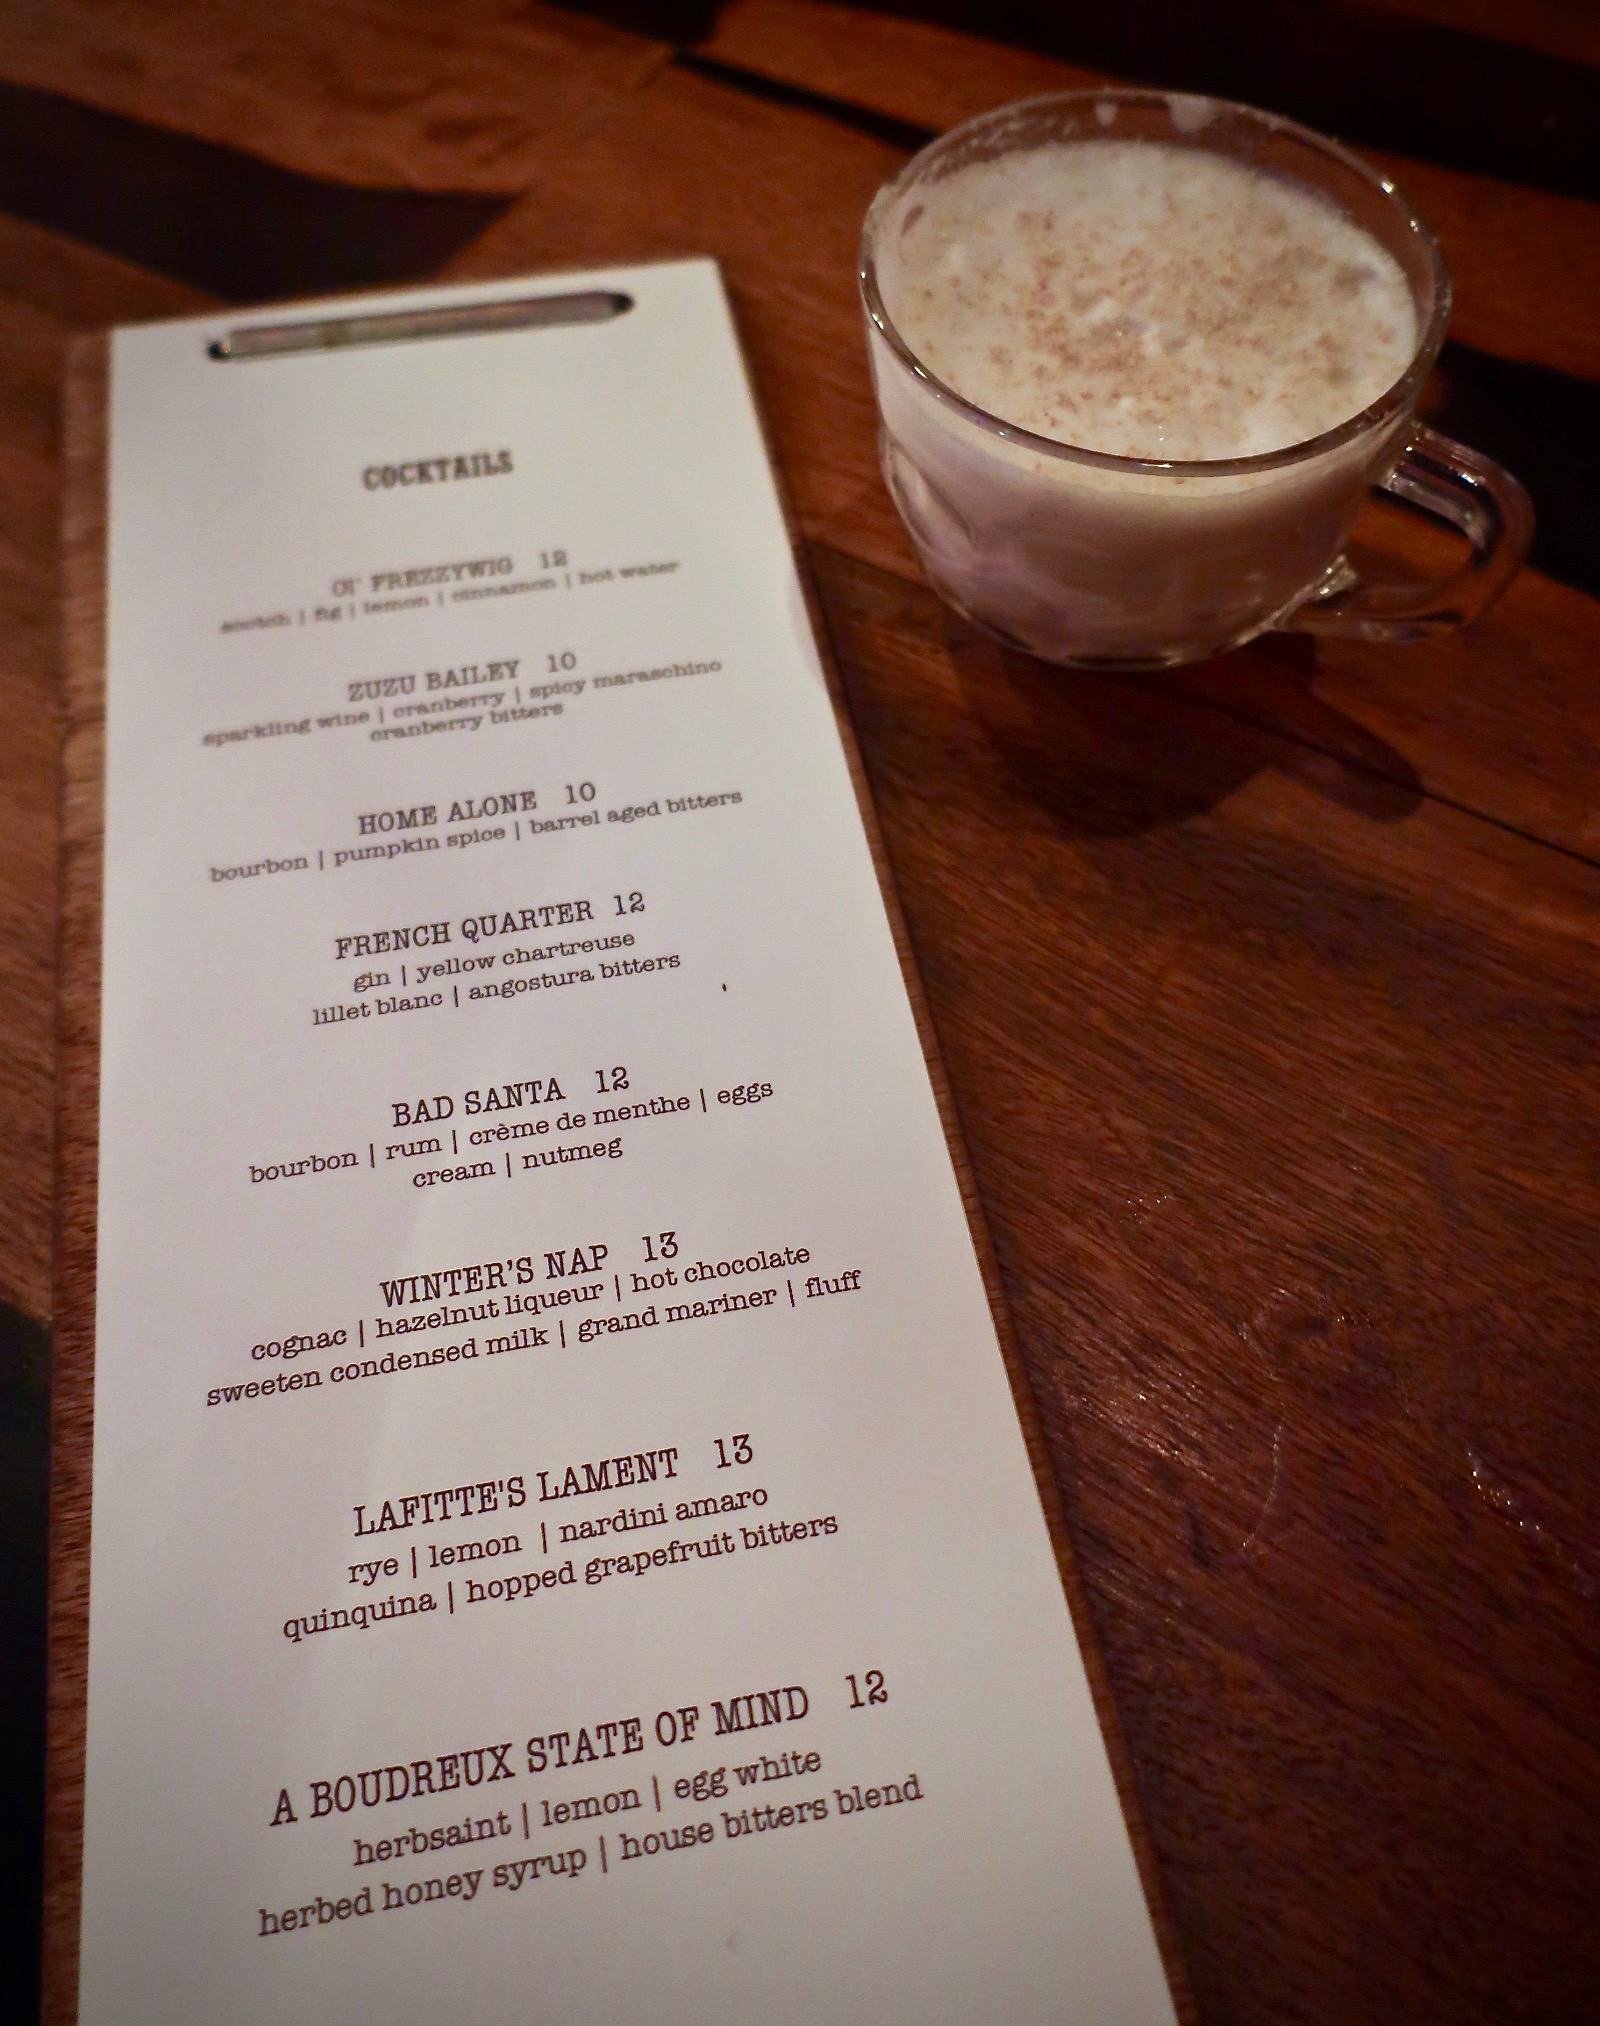 The holiday themed cocktail menu at NorthWest Pole on the second floor of The Waiting Room.